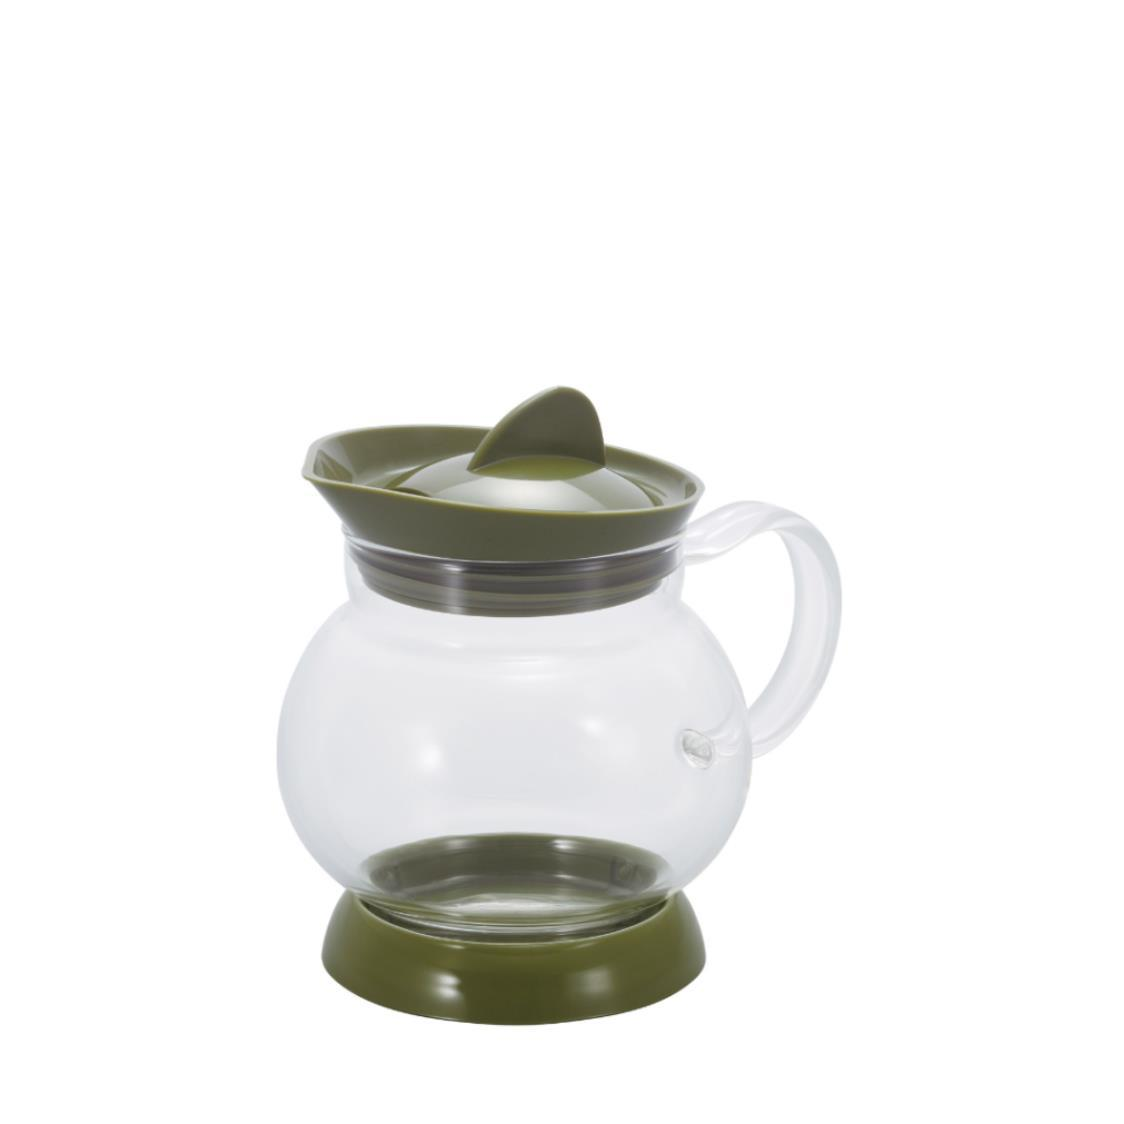 Jumping Leaf Tea Pot Olive Green 350ml JTS-35